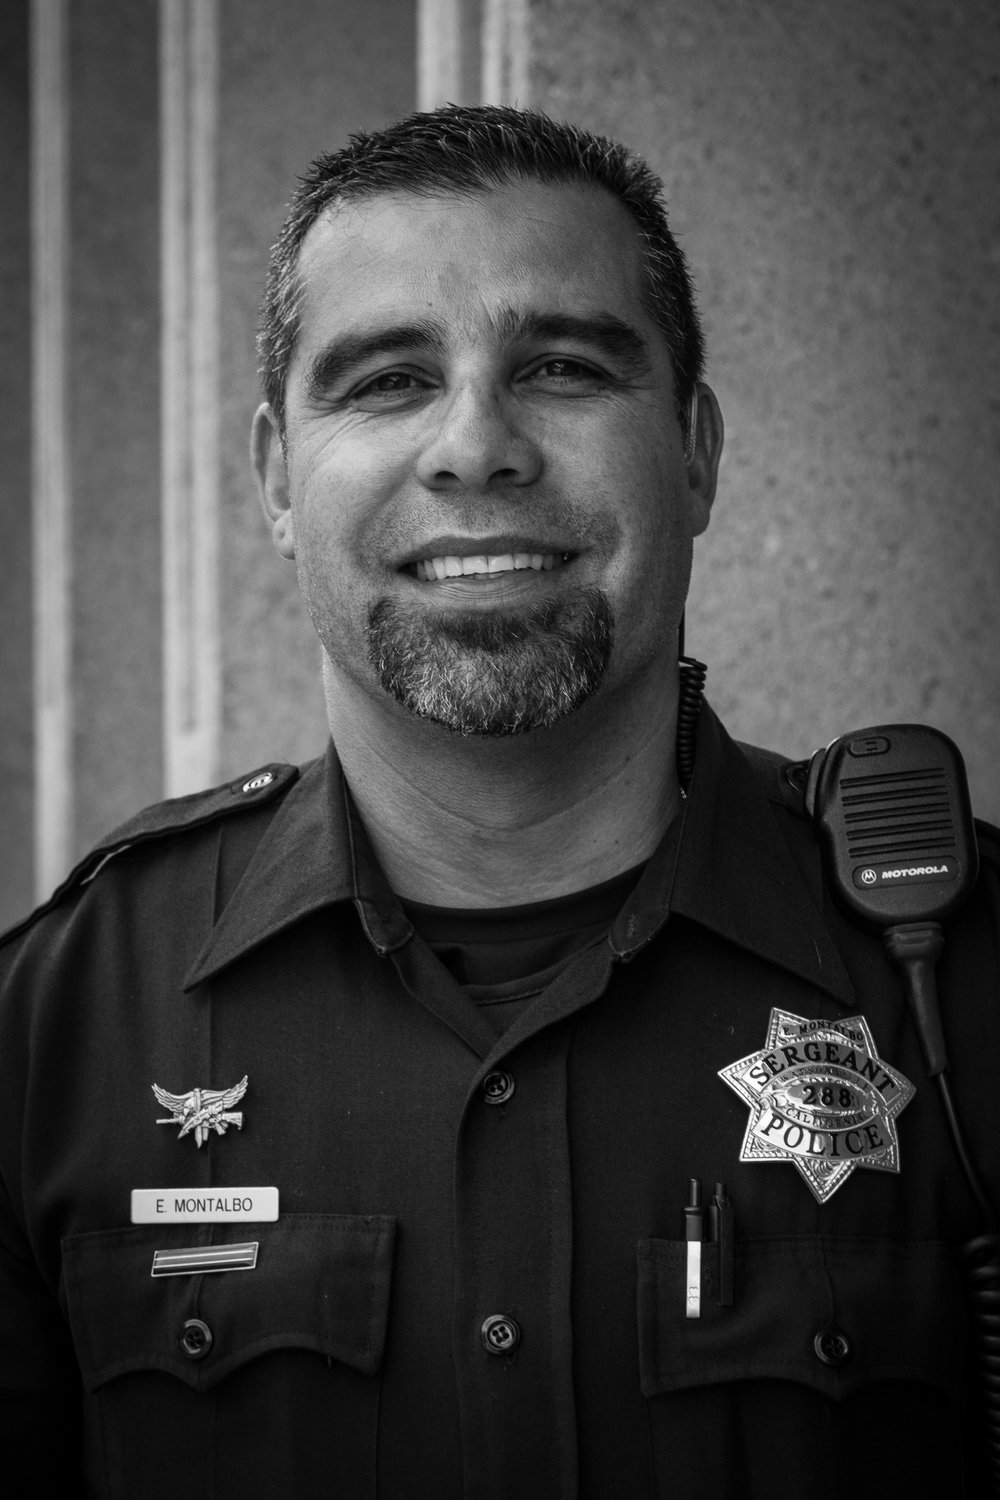 Eric Montalbo   This is Eric's 3rd year supporting the Jacob's Heart fundraiser and he is happy to support his fellow officers in their efforts.